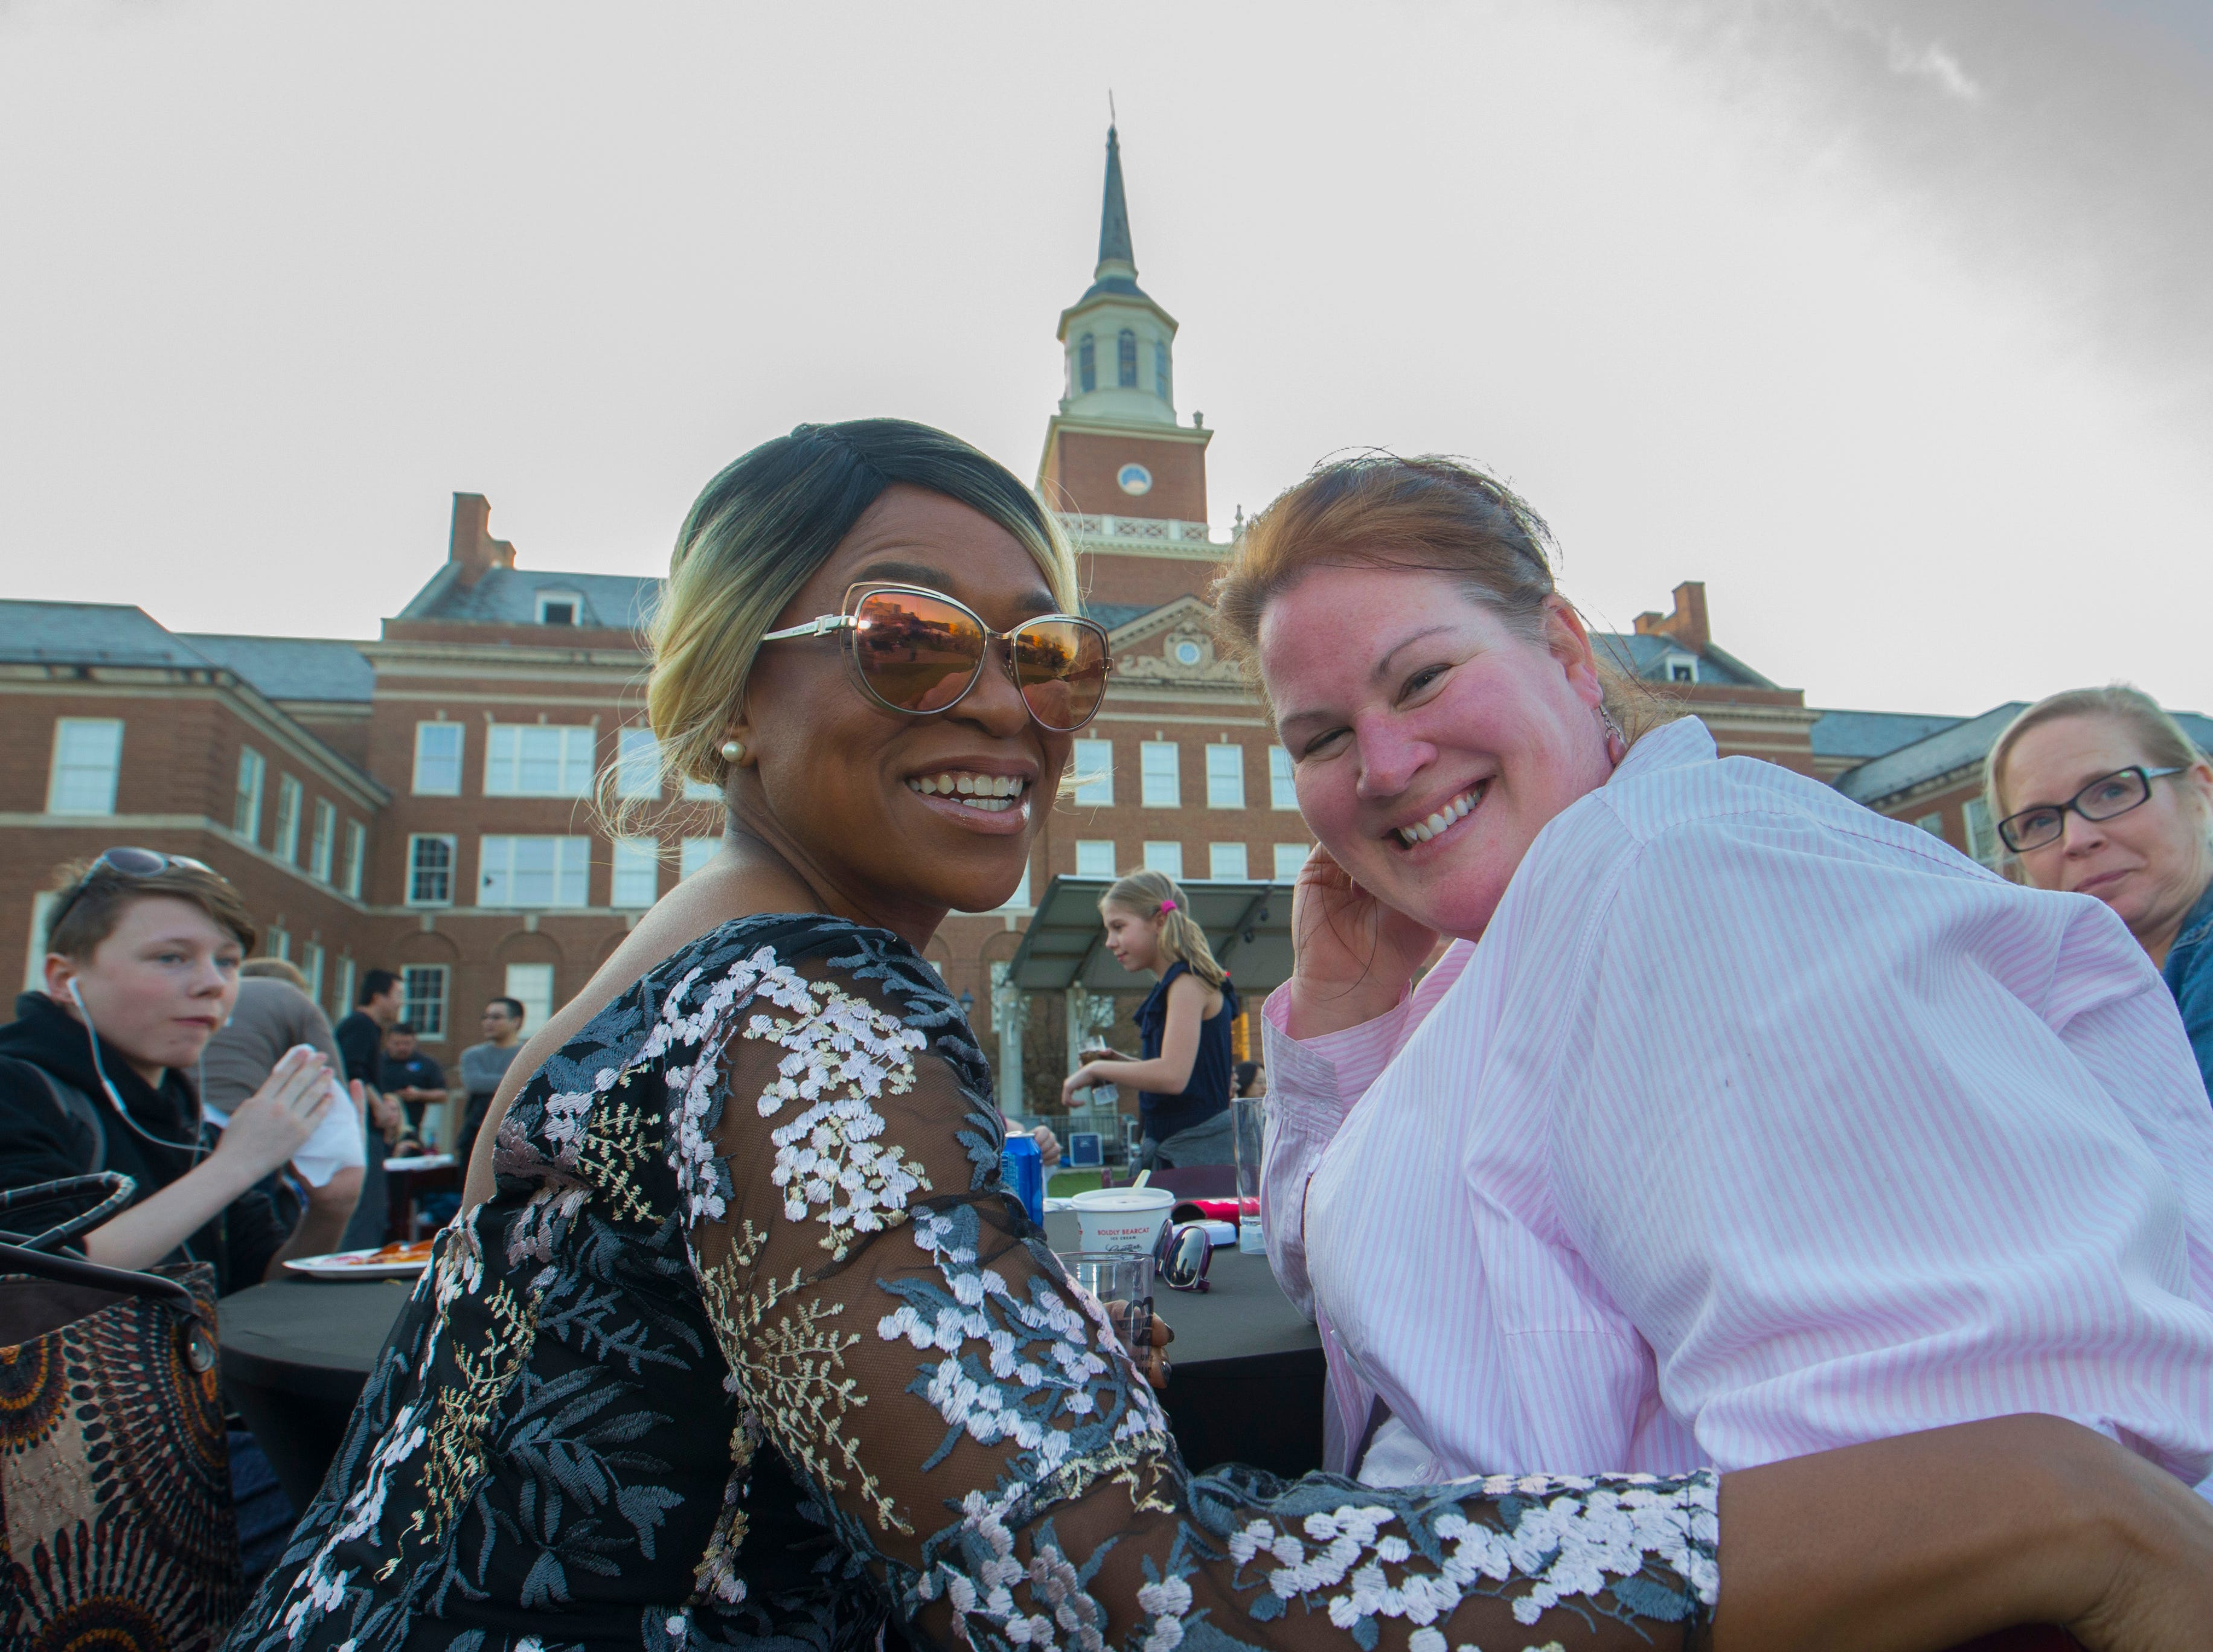 Dr. Holly McGee, left and Jenny Wohlfarth posed for a photo during Community Day to celebrate UC's Bicentennial Saturday April 6, 2019 at McMicken Commons on the campus of the University of Cincinnati. University of Cincinnati/Joseph Fuqua II